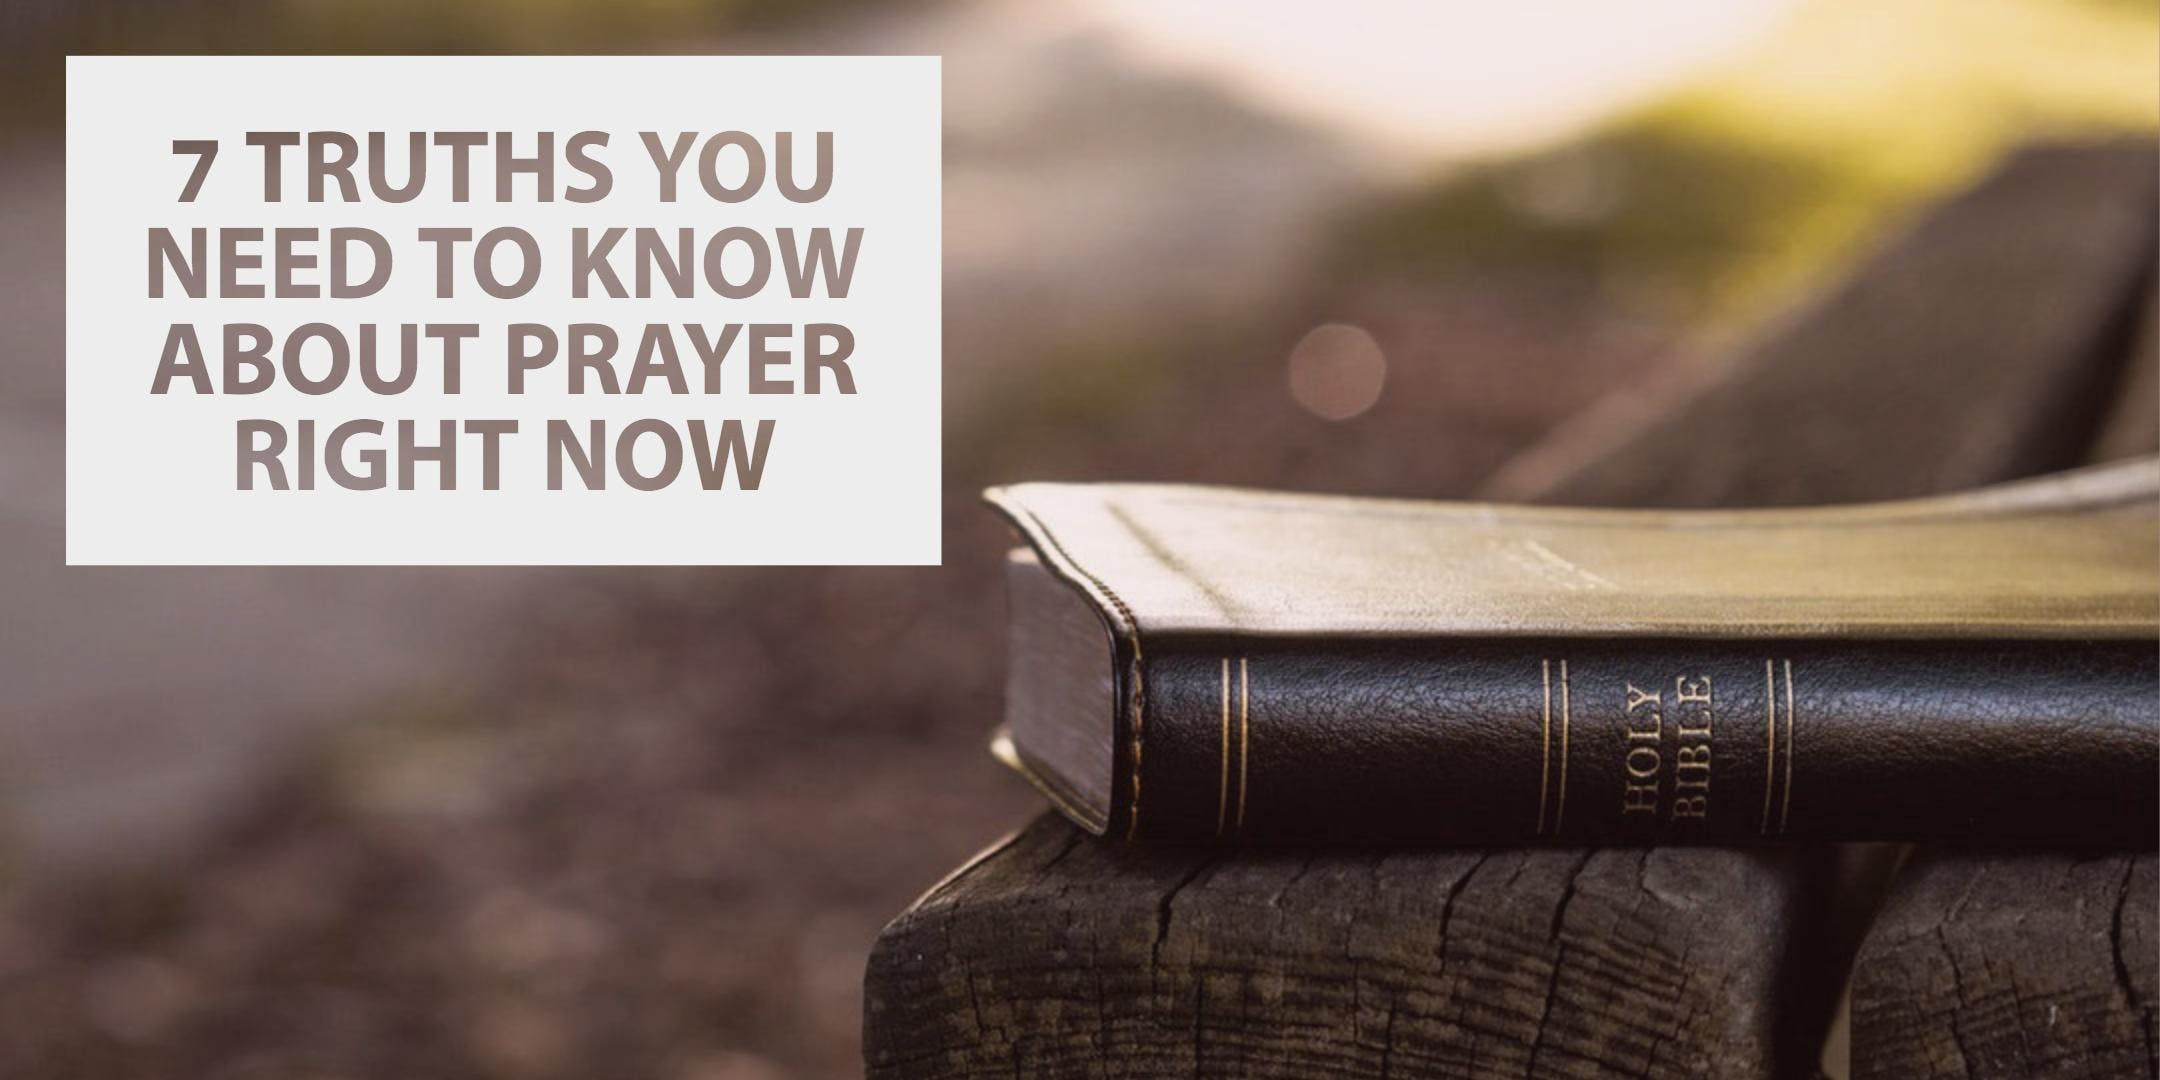 Intercessors School: 7 Truths About Prayer You Need to Know Right Now (Jennifer LeClaire)